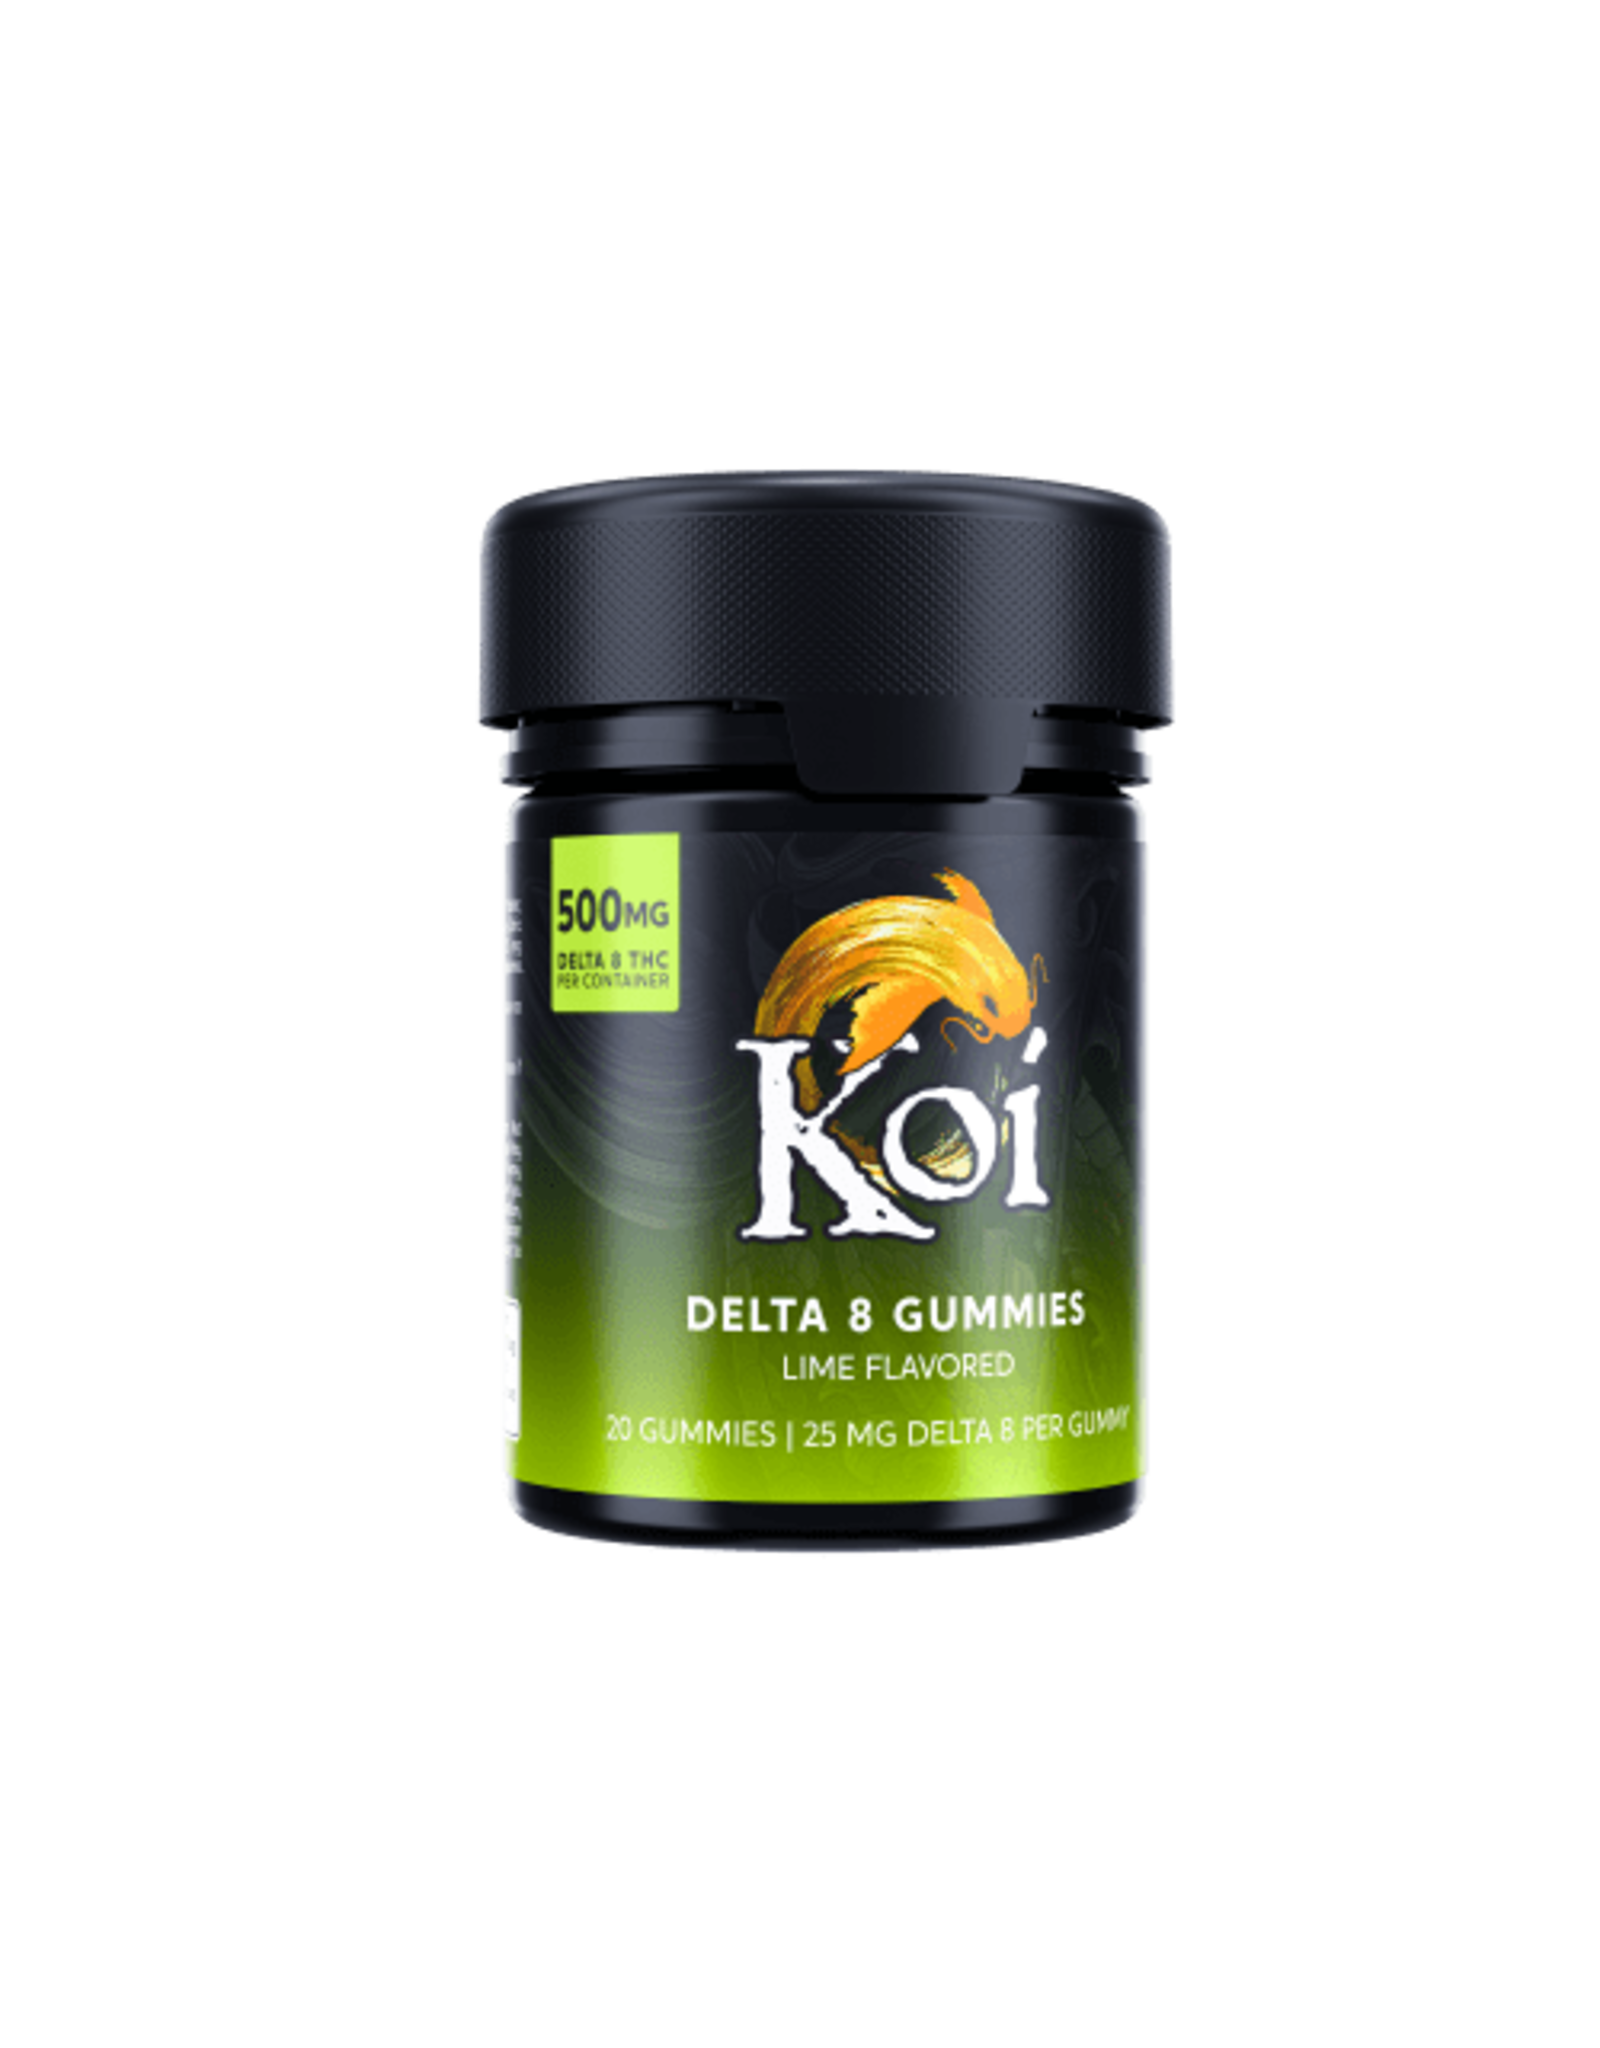 koi delta 8 gummies lime